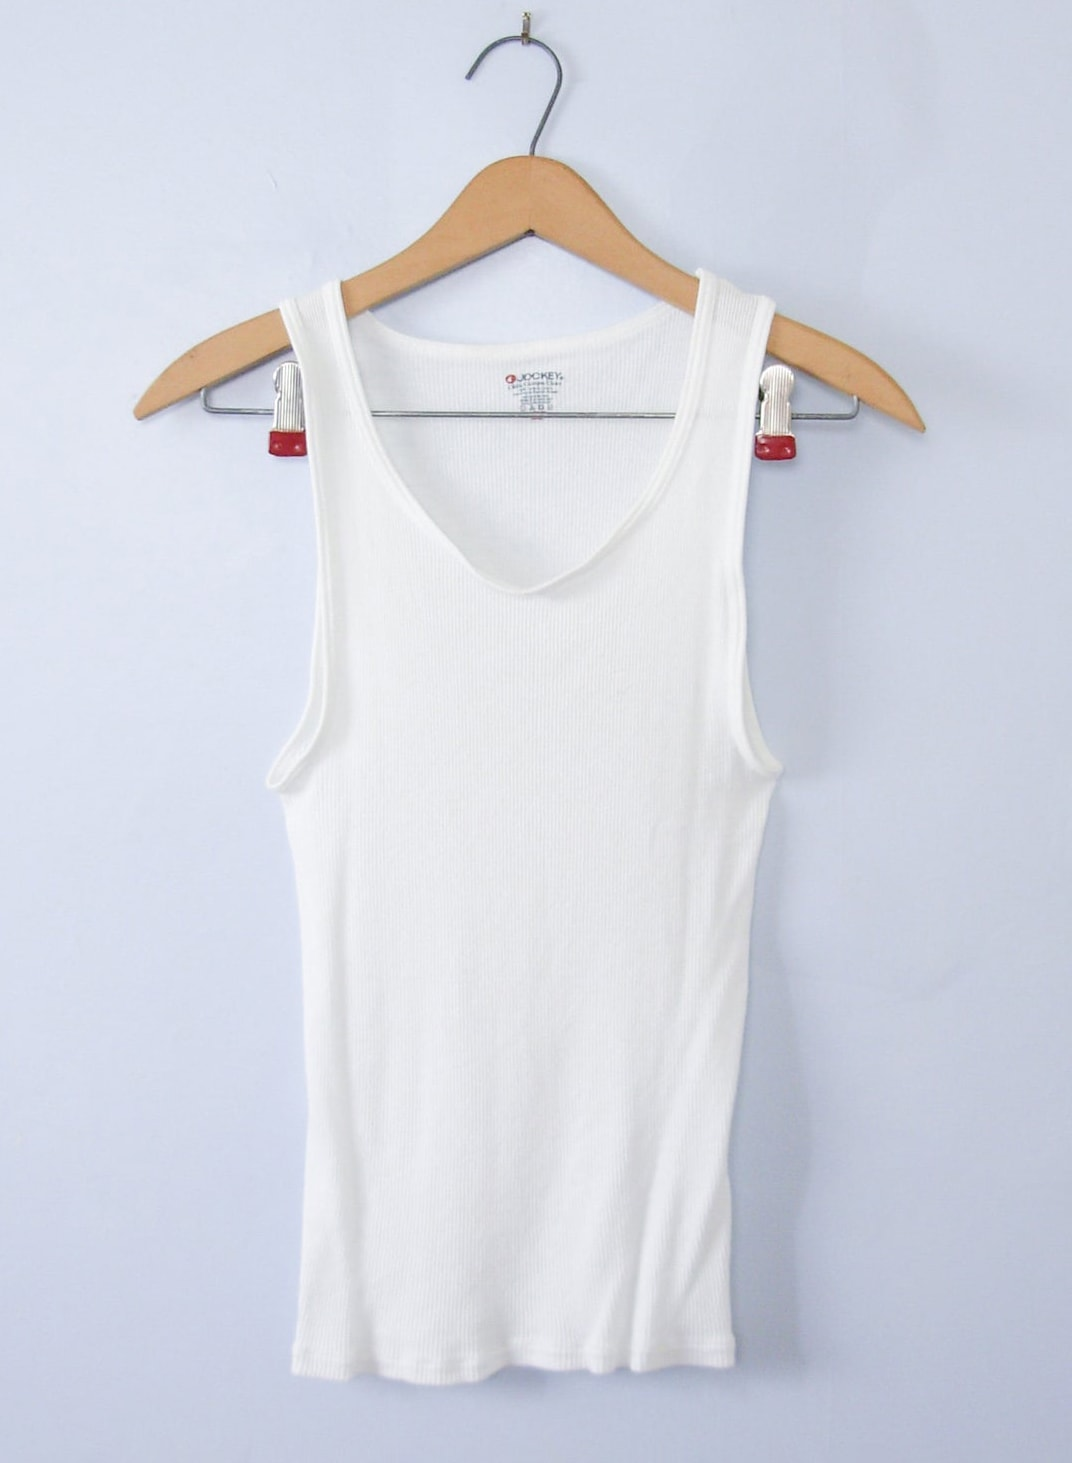 DC reco Vintage 90's ribbed knit white tank top, women's size small